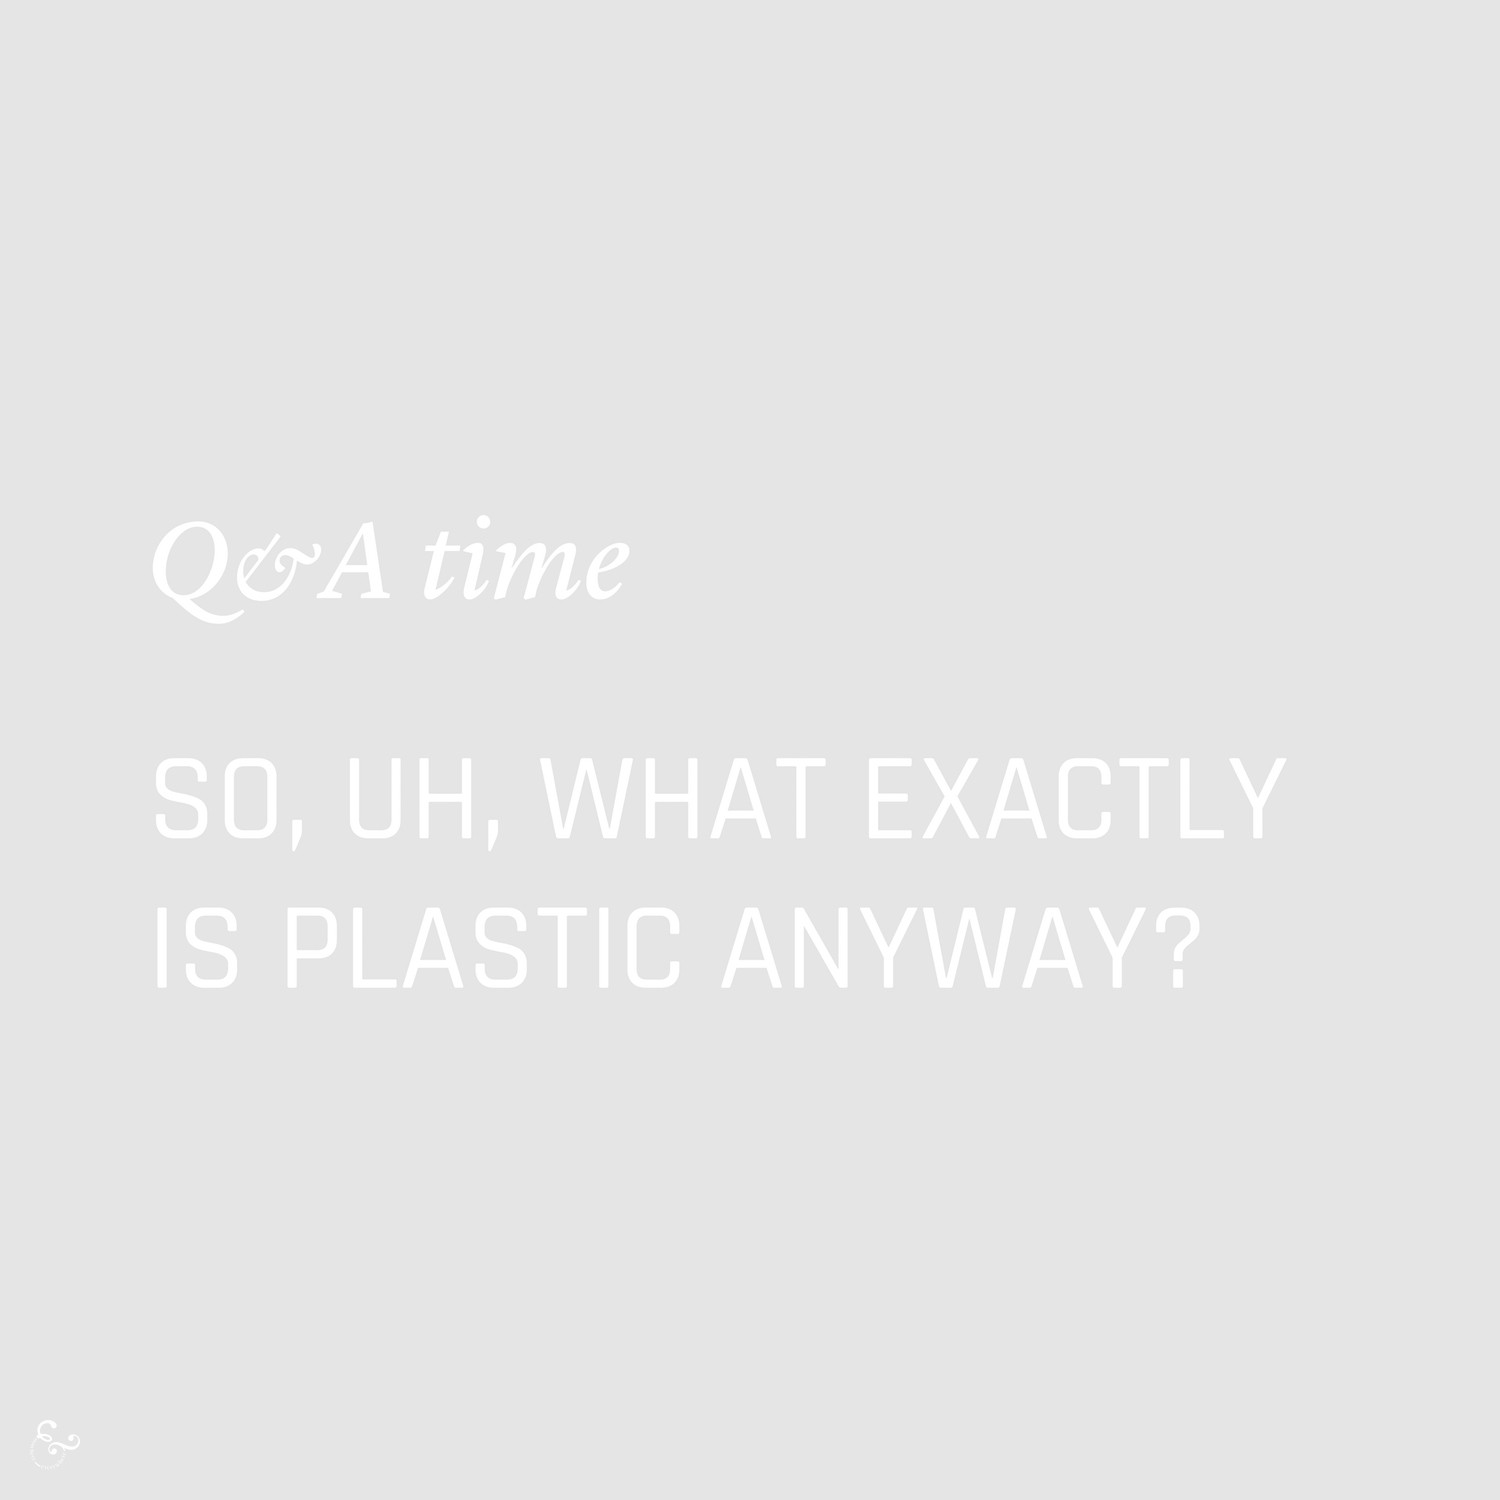 What exactly is plastic? Environment Environmental Questions FAQs Frequently Asked Questions Climate Change Plastics Oceans Animals Nowhere & Everywhere